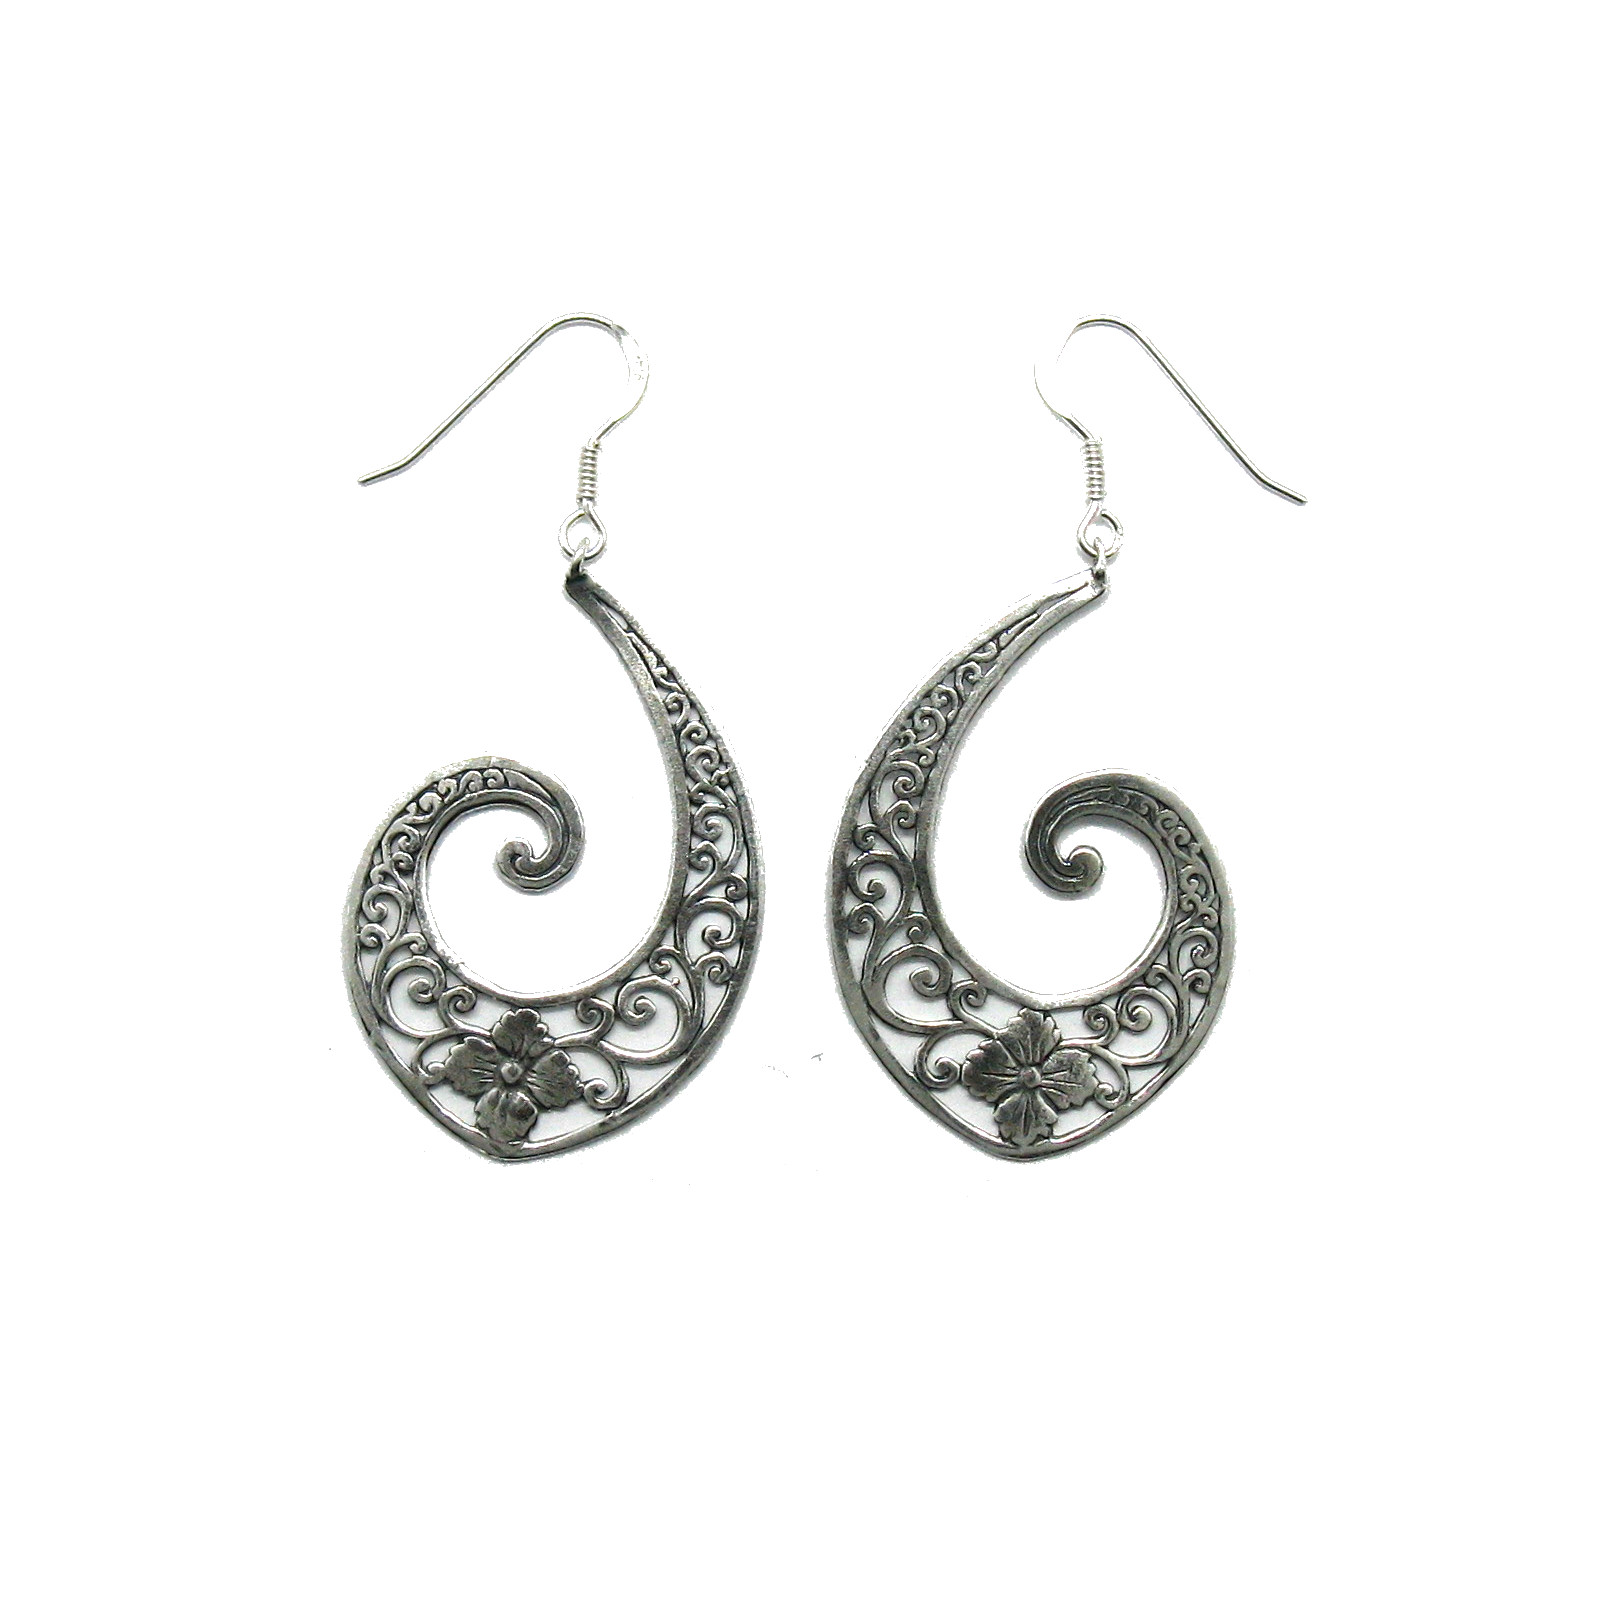 Silver earrings - E000755